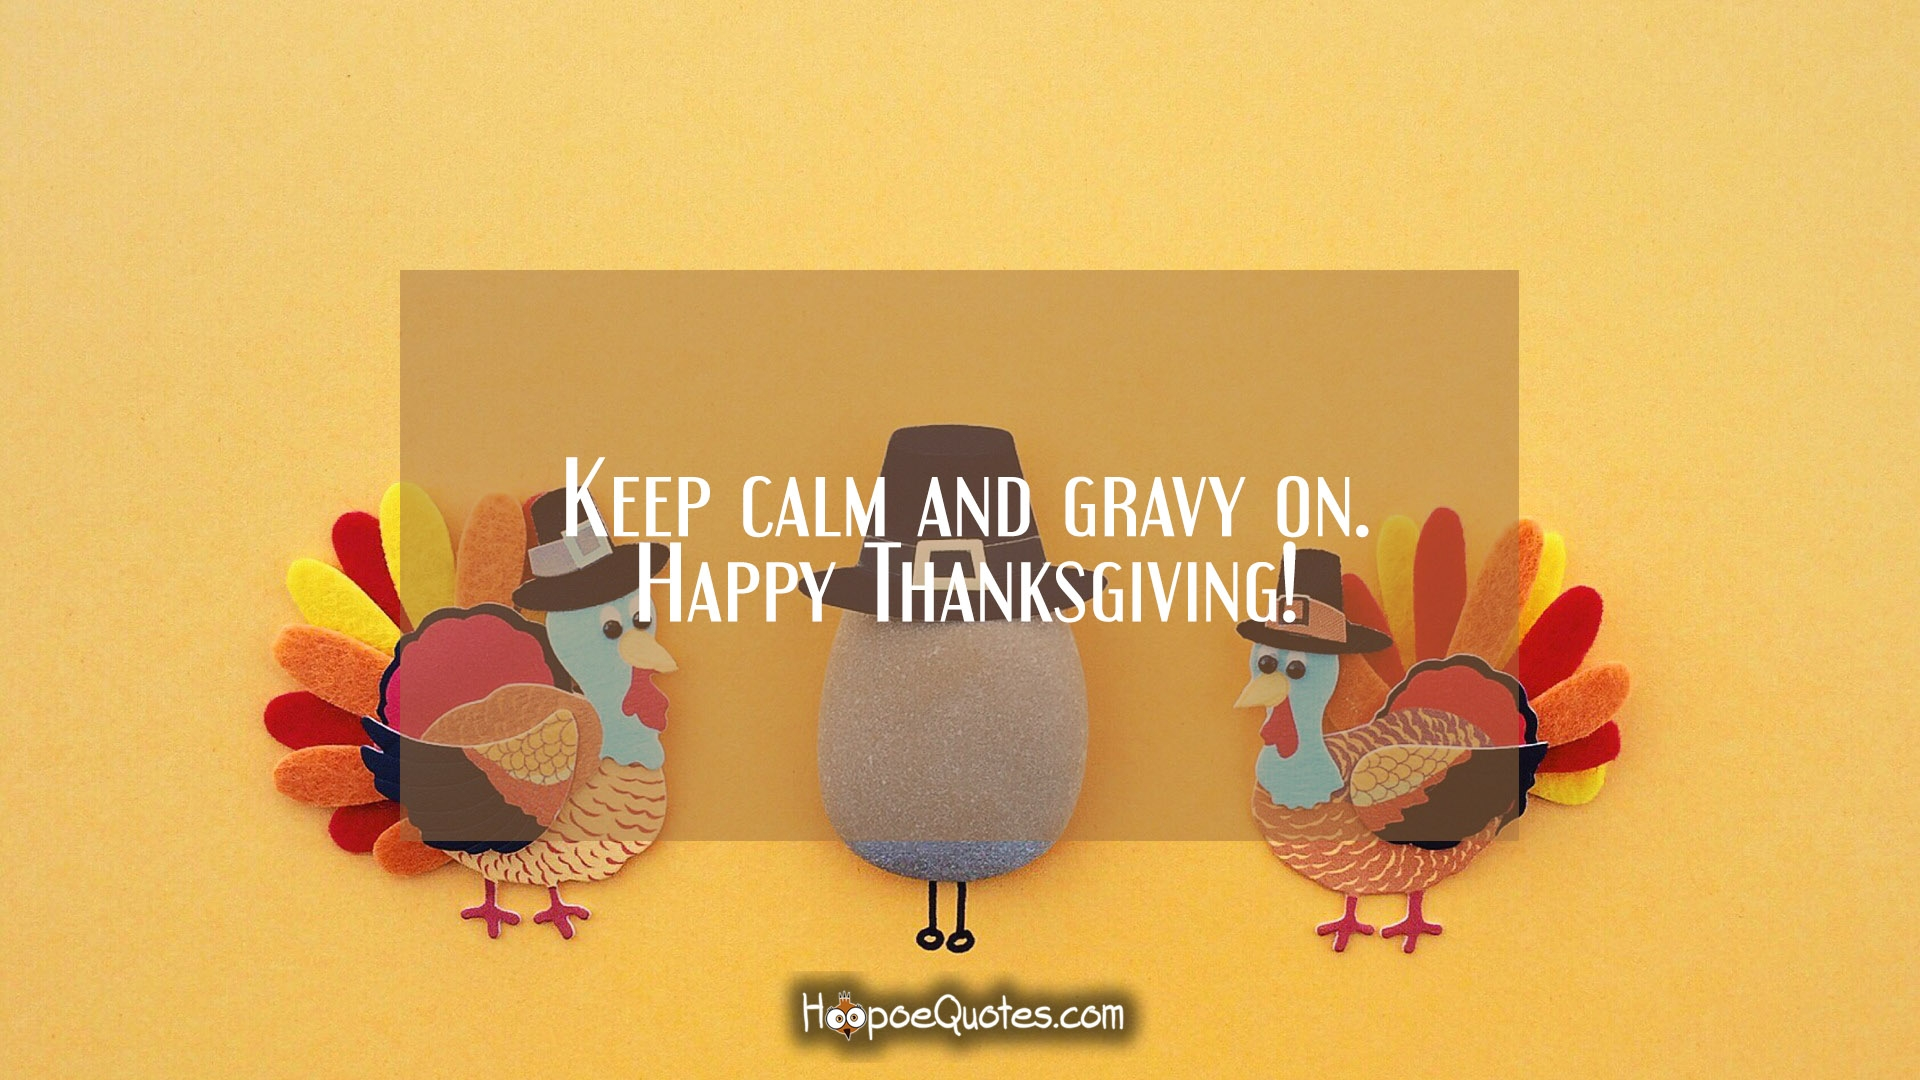 Relieving Him Happy Thanksgiving Messages To Friends Keep Gravy Happy Hoopoequotes Happy Thanksgiving Messages inspiration Happy Thanksgiving Messages